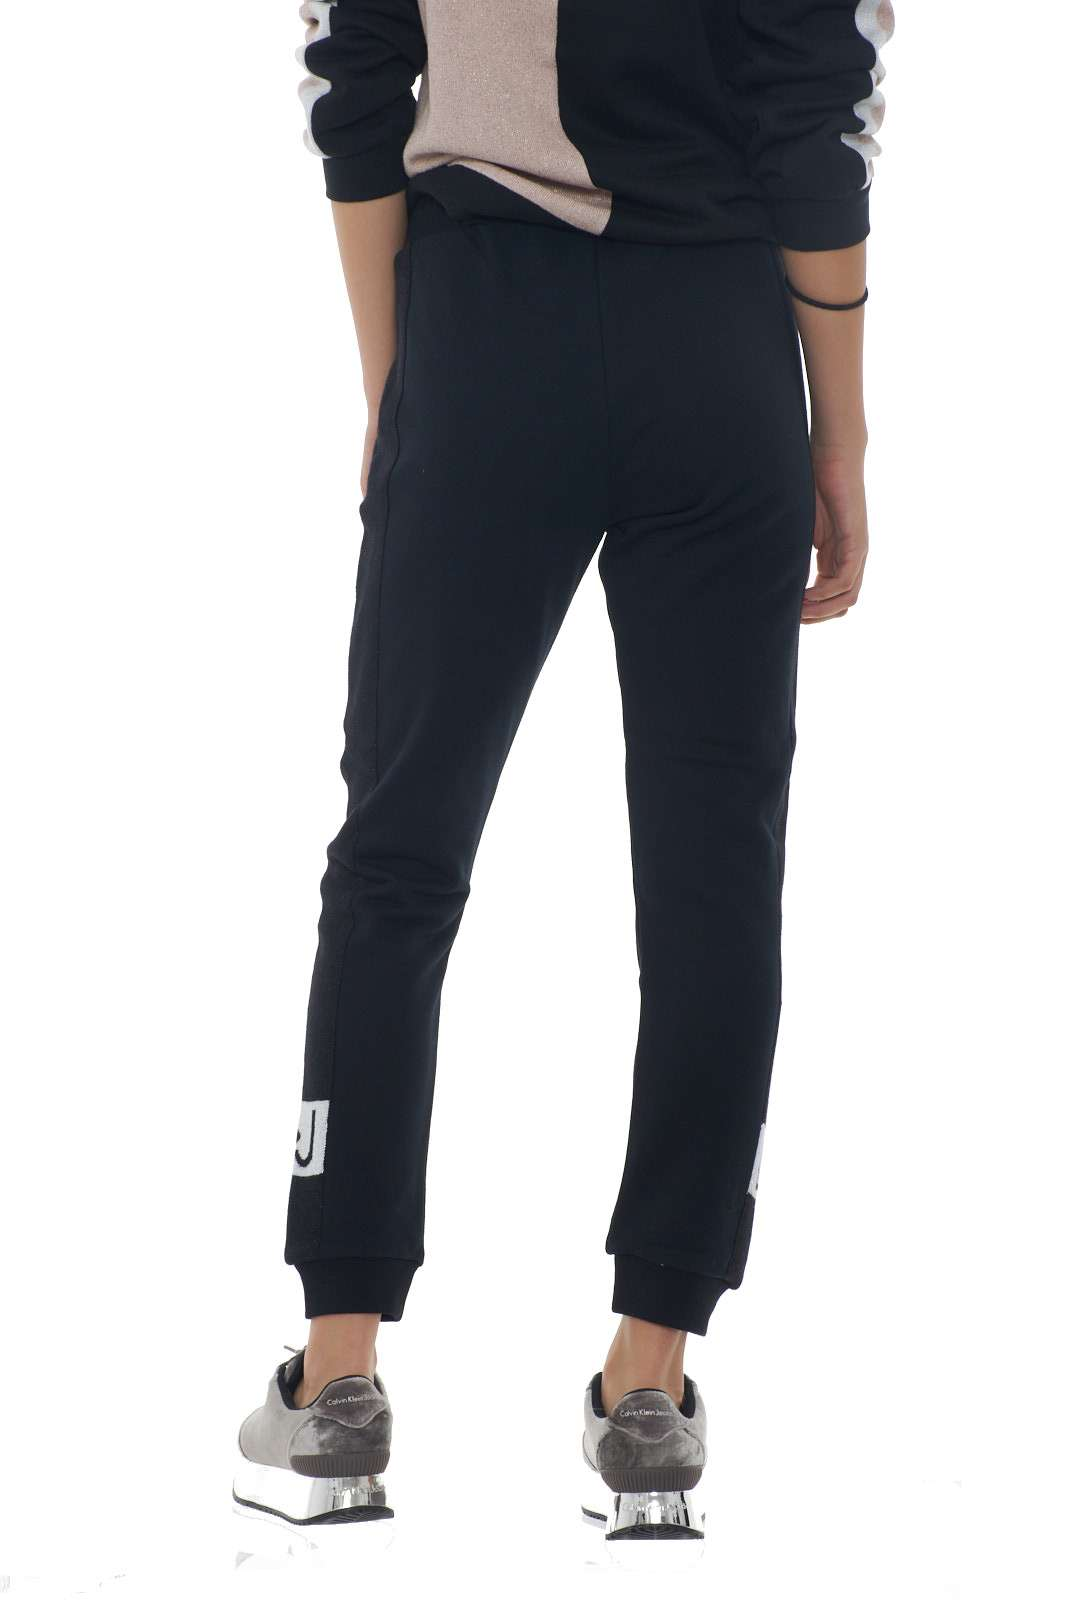 https://www.parmax.com/media/catalog/product/a/i/AI-outlet_parmax-pantaloni-donna-Liu-Jo-T69105-C.jpg